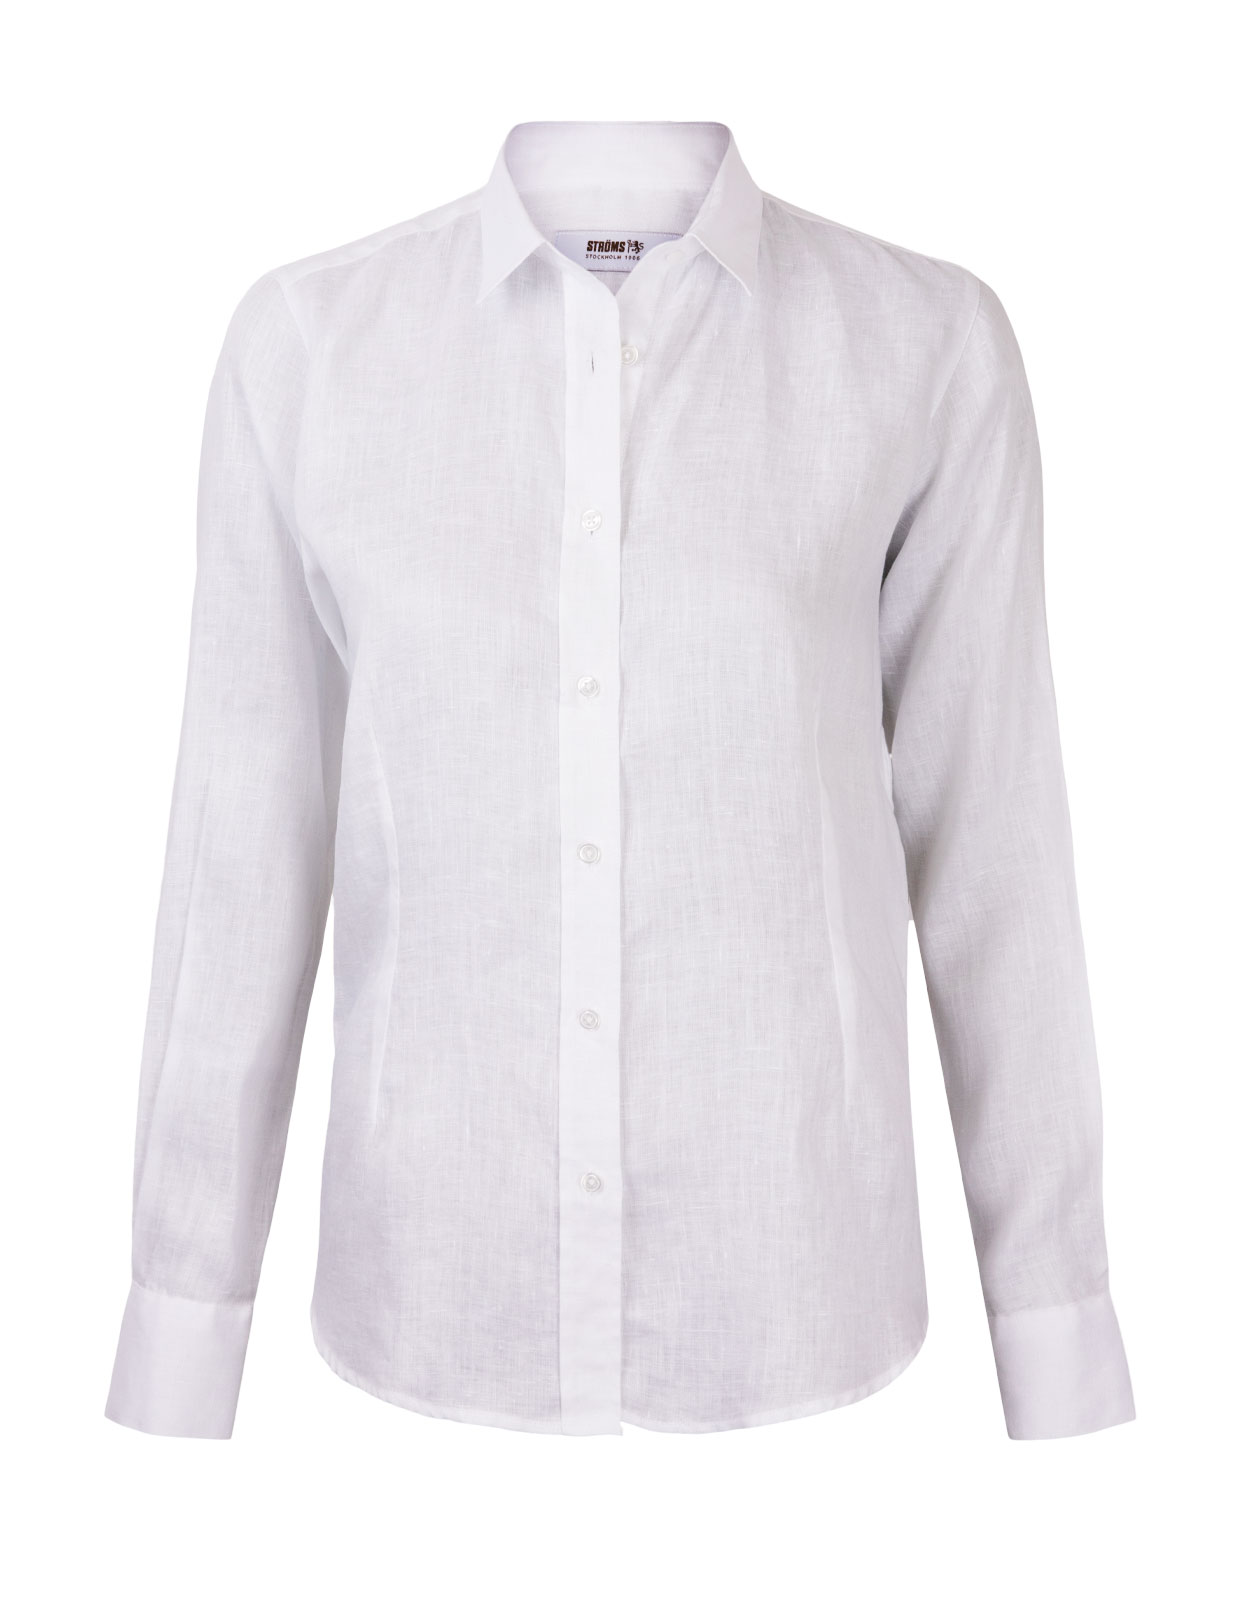 Linnen Shirt Long Sleeve White